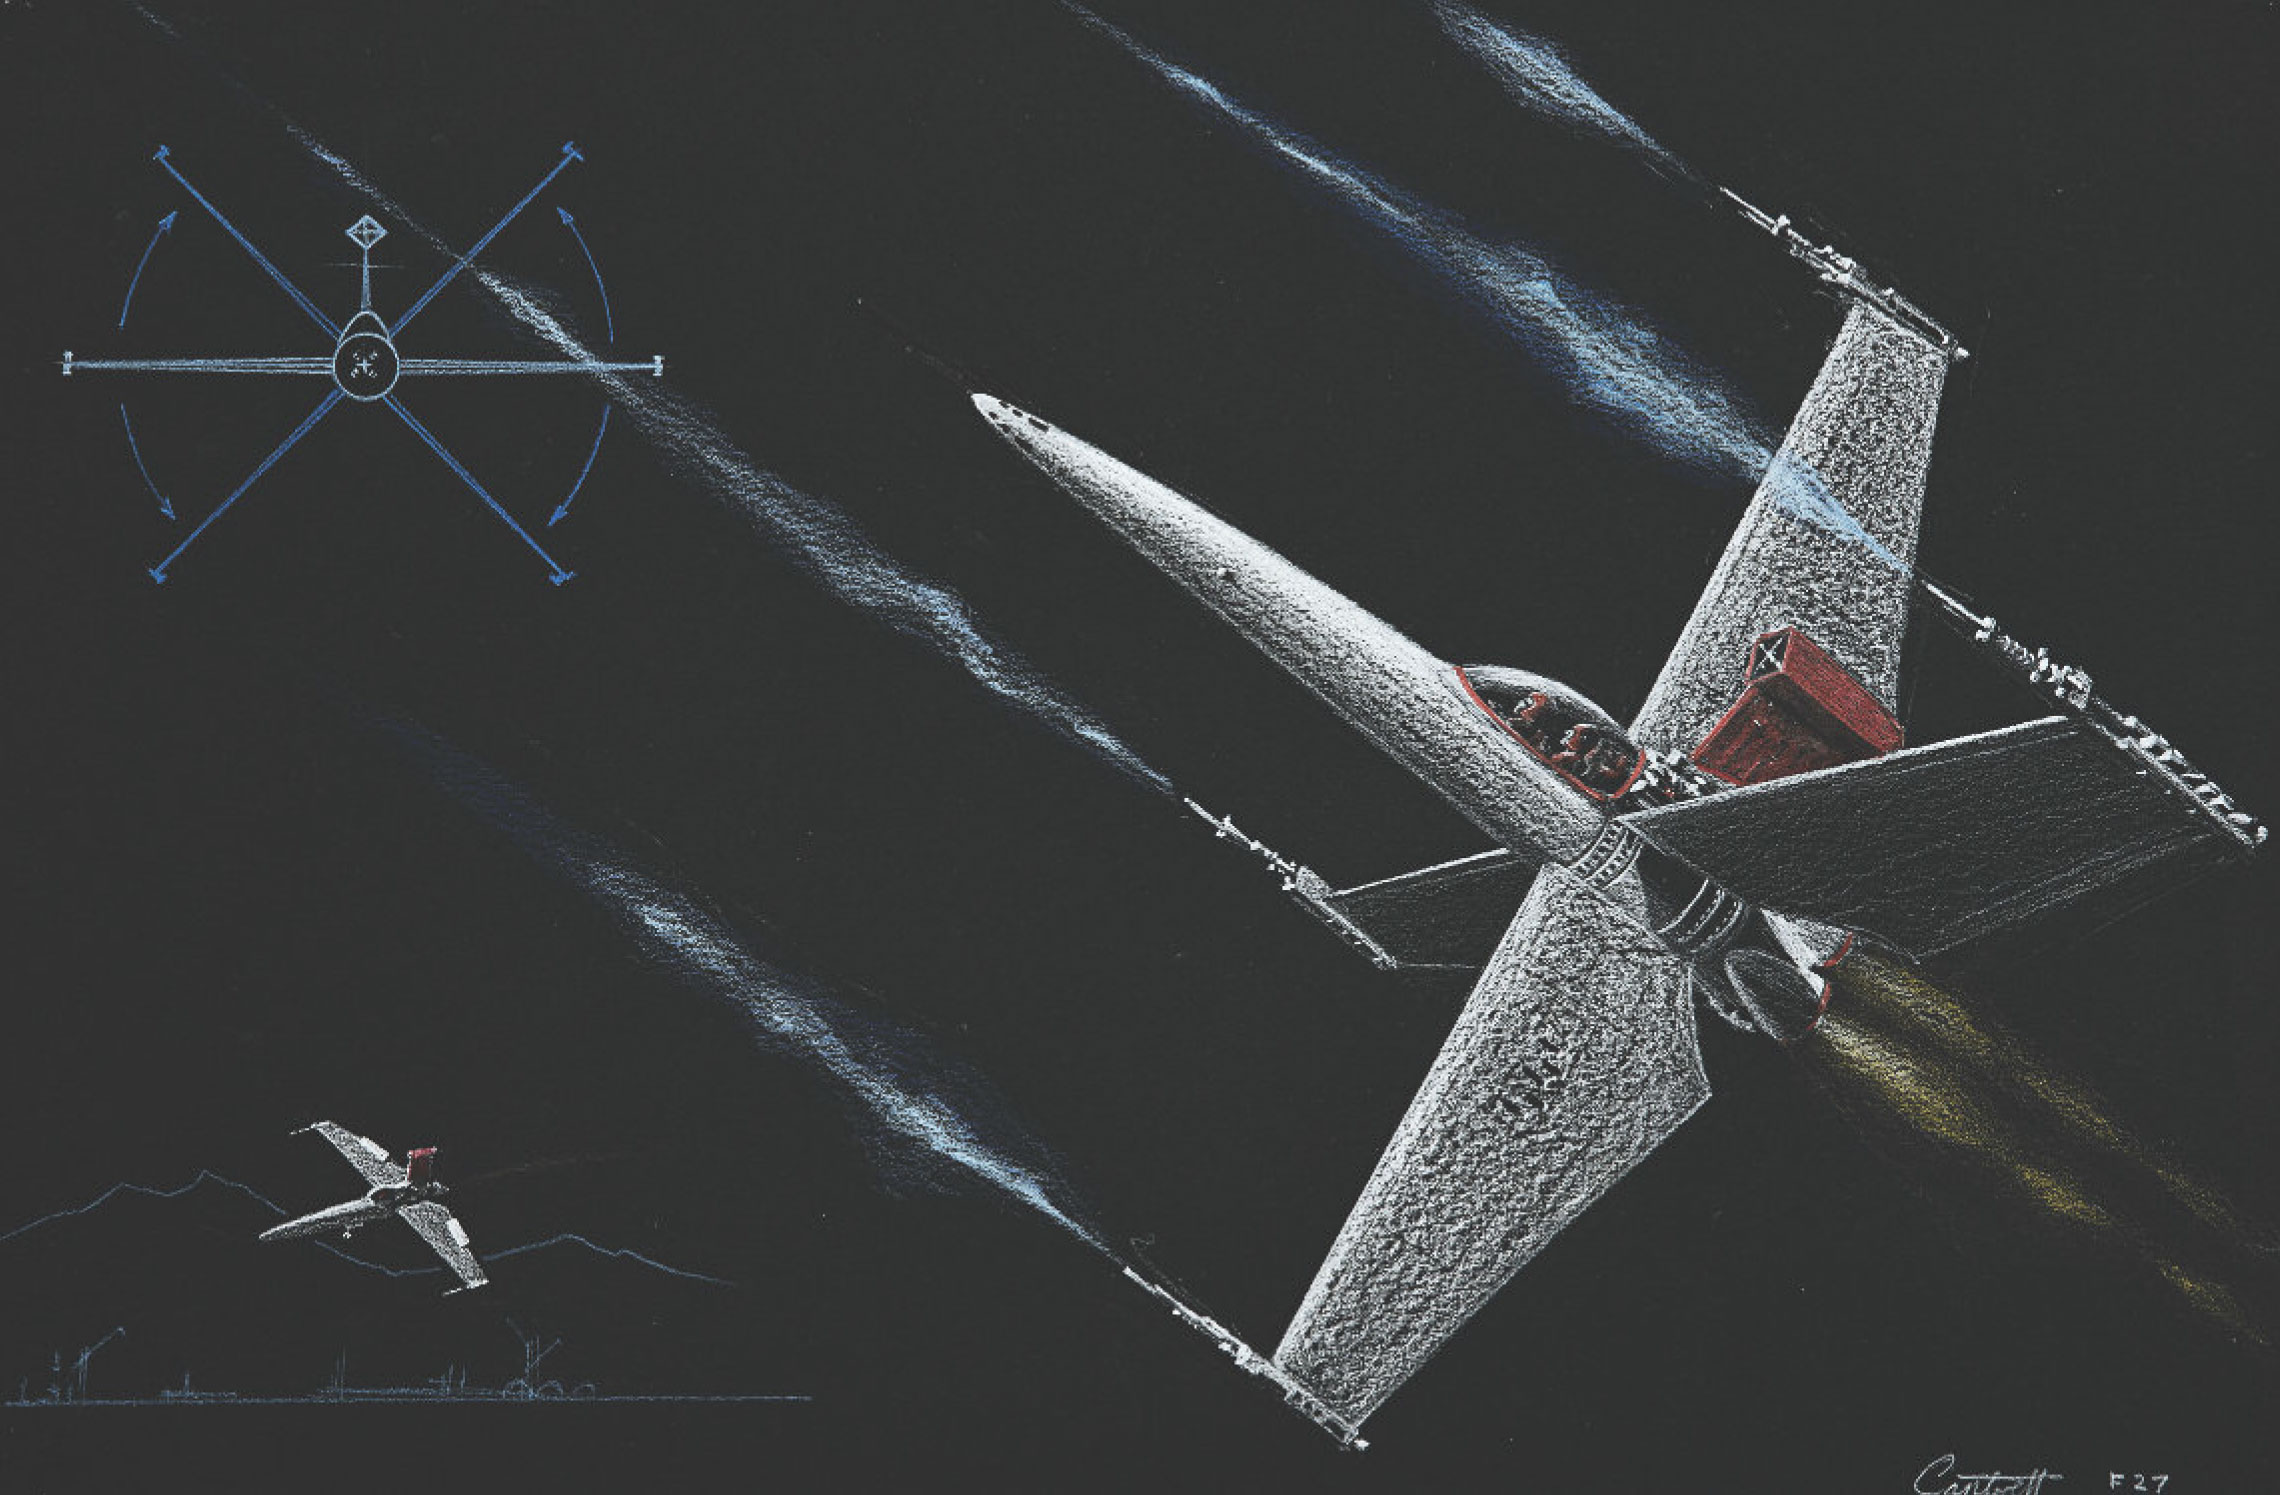 Cantwell's Concept Art